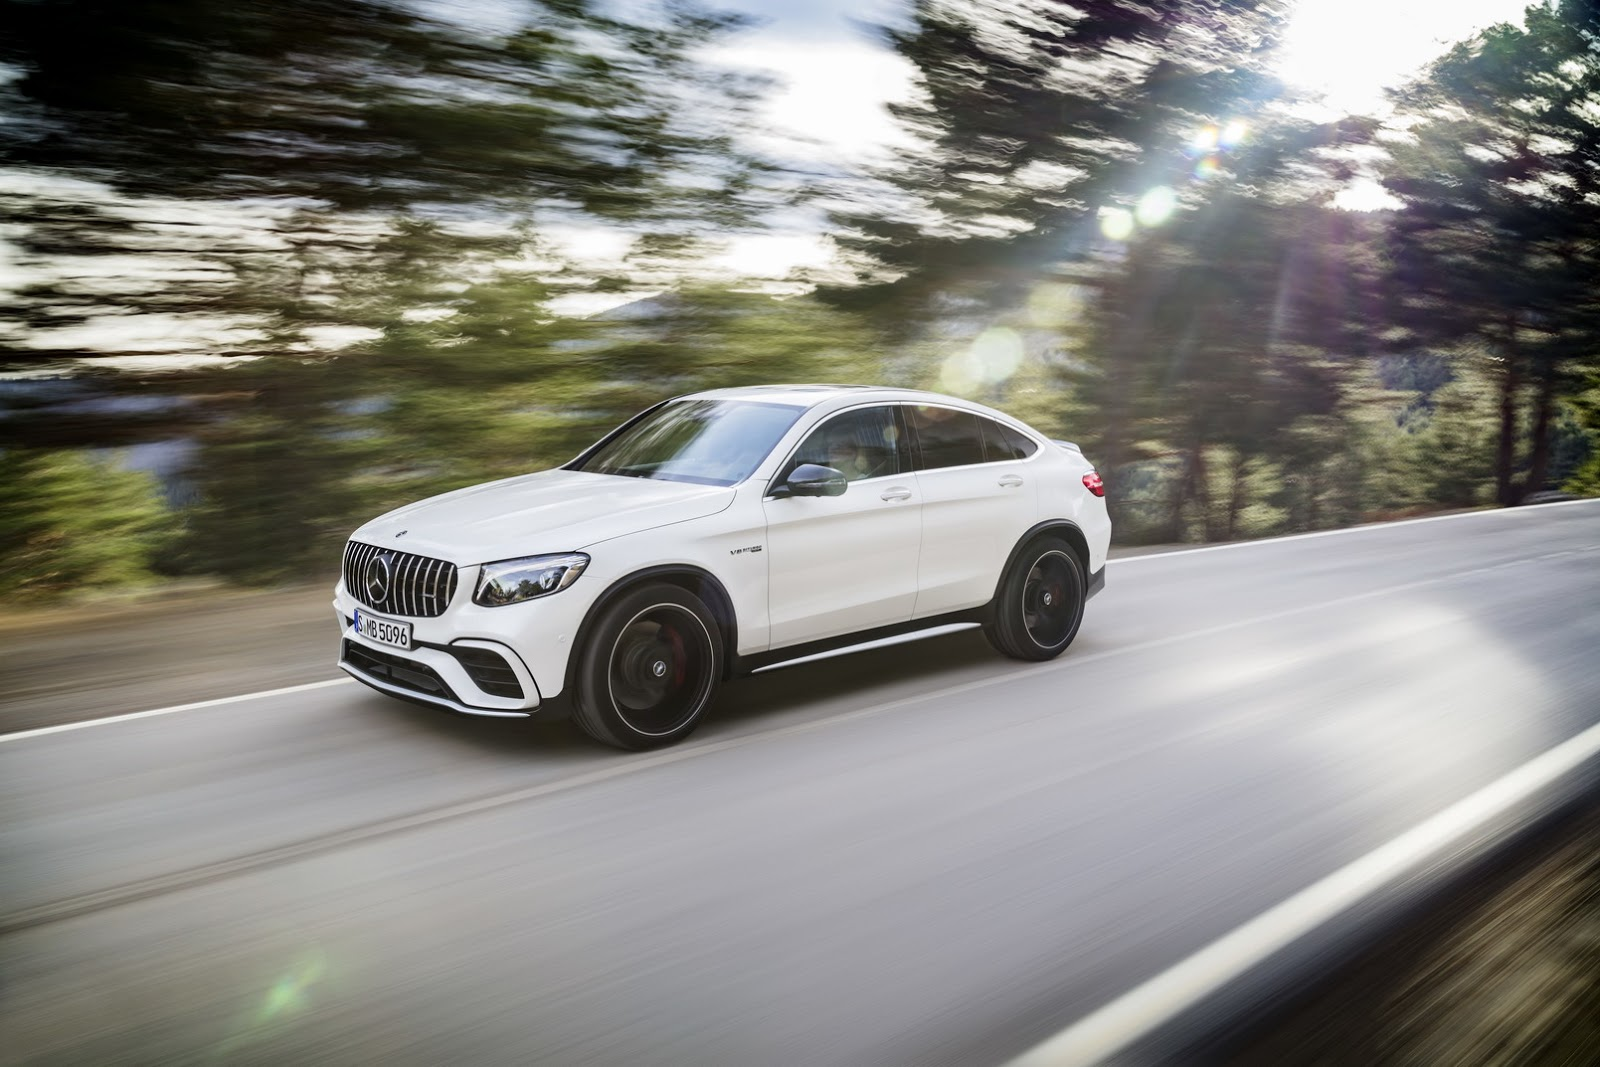 mercedes amg glc 63 suv and coupe pricing announced edition 1 launched carscoops. Black Bedroom Furniture Sets. Home Design Ideas